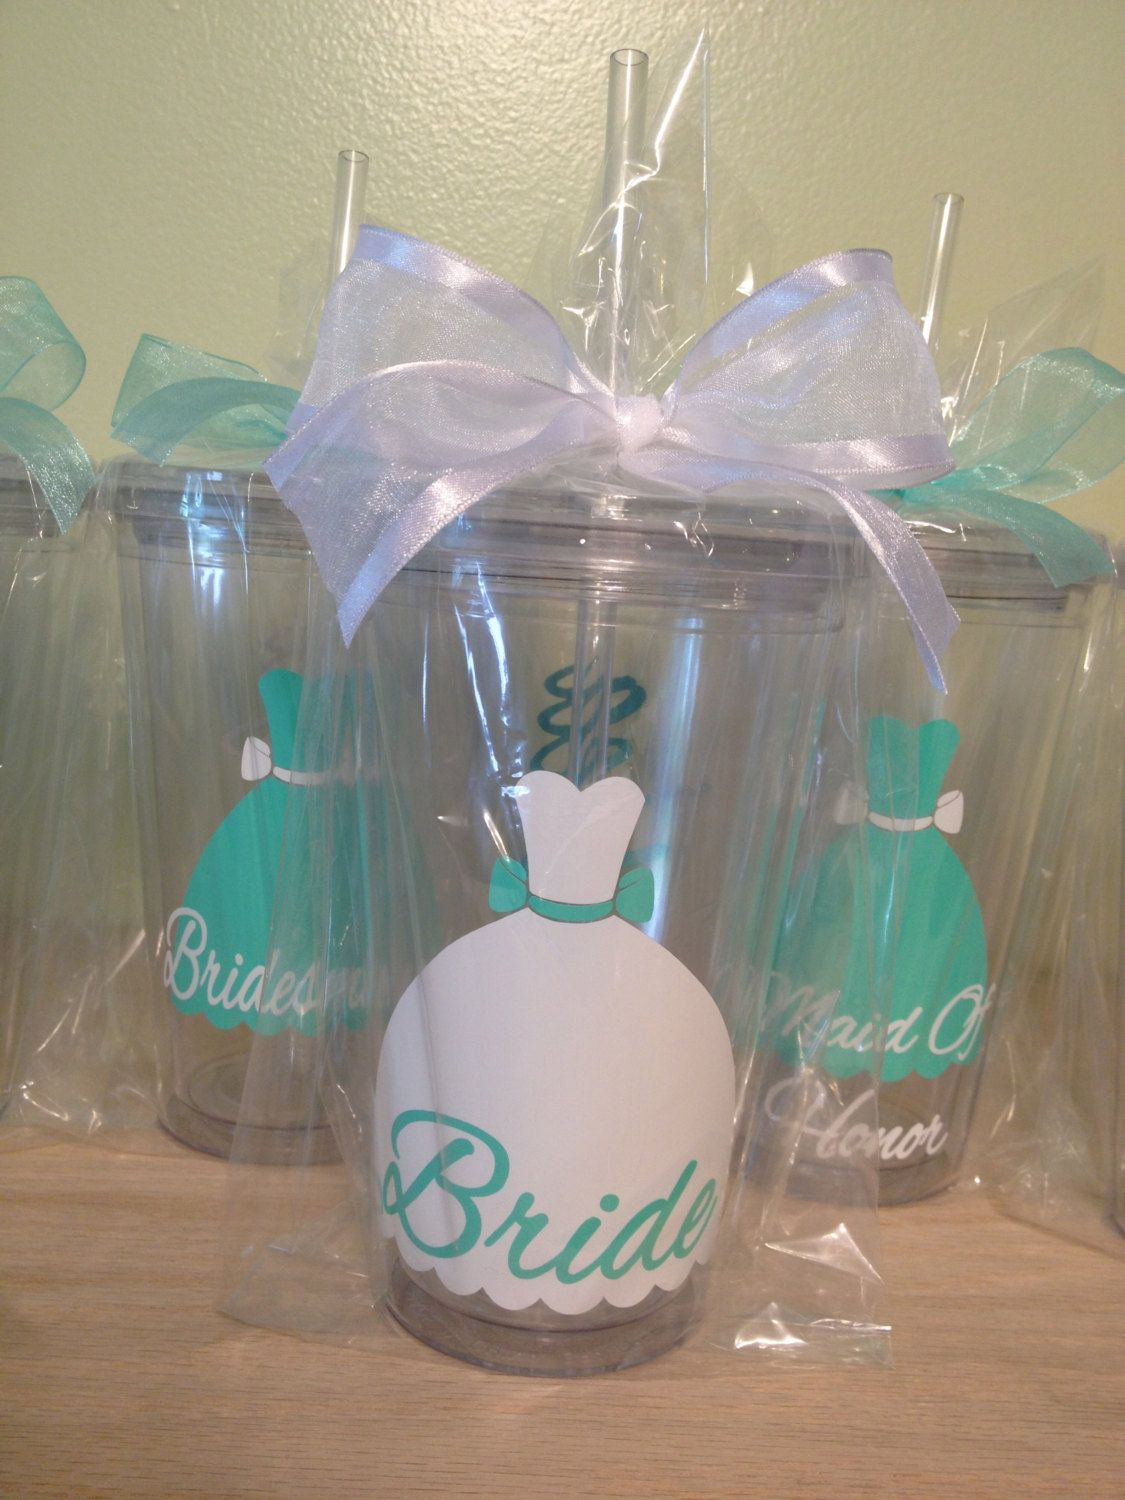 Bridal party gift, dress style Personalized drinkware